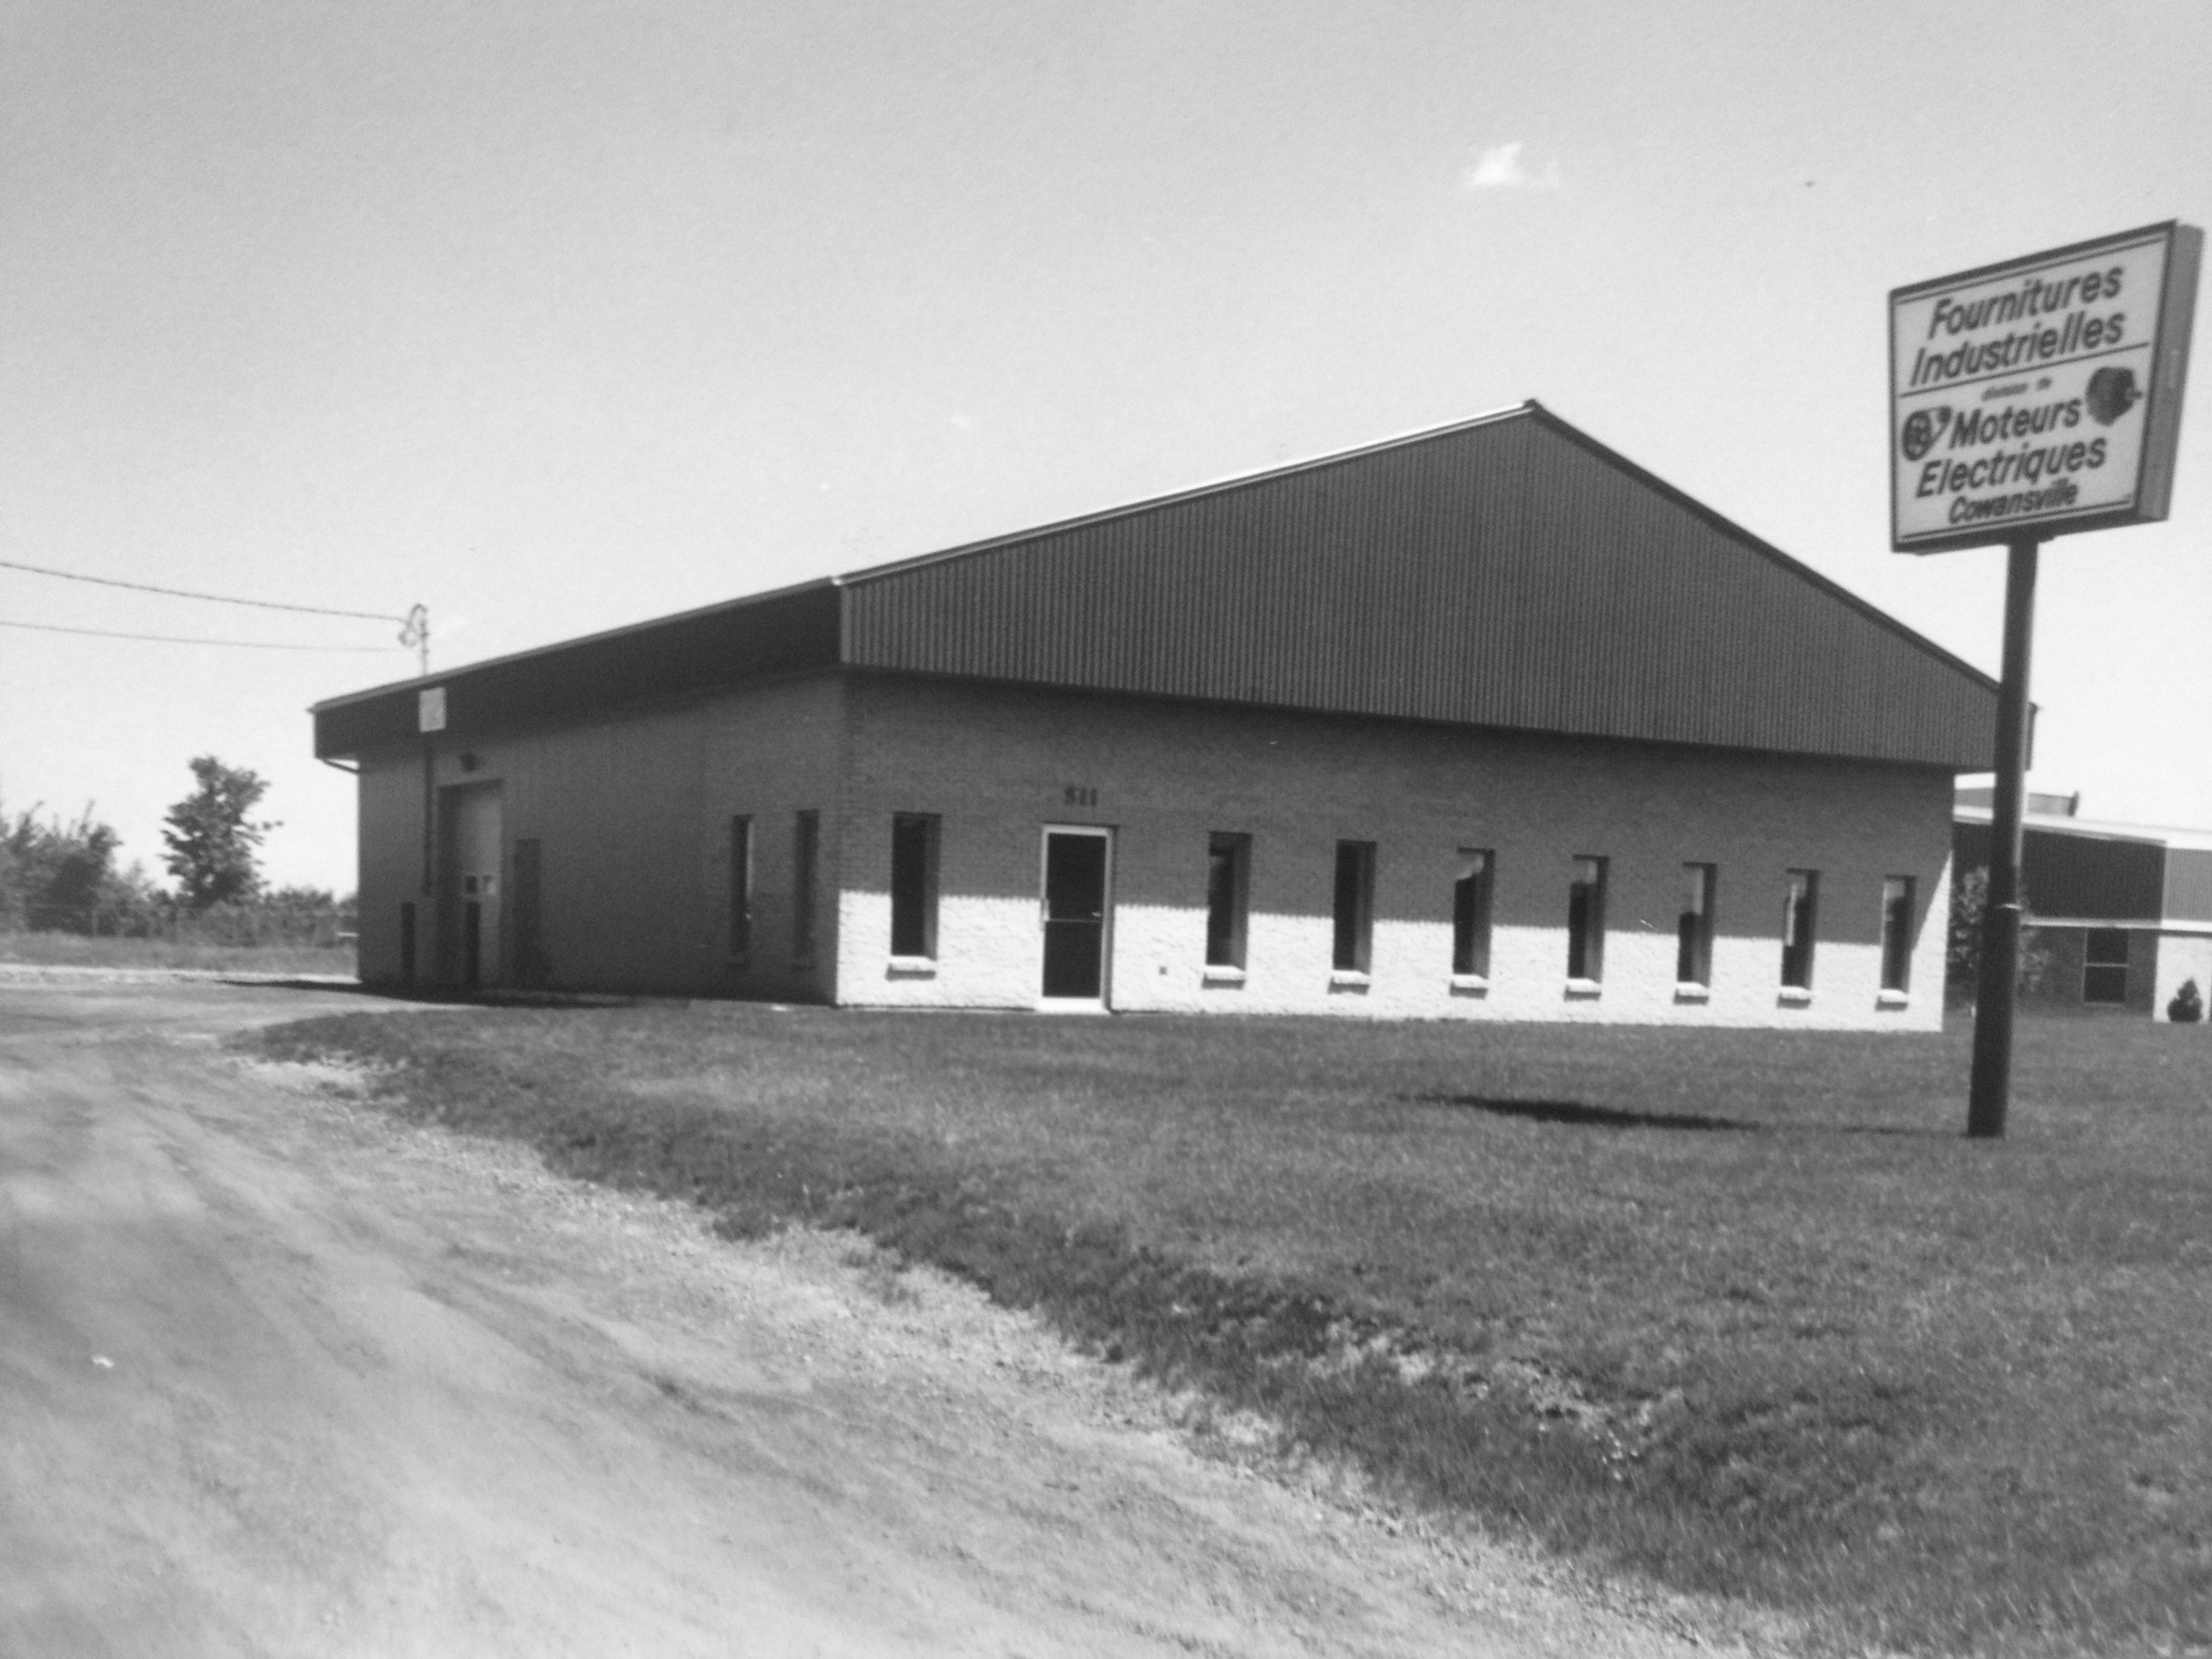 The cowansville factory